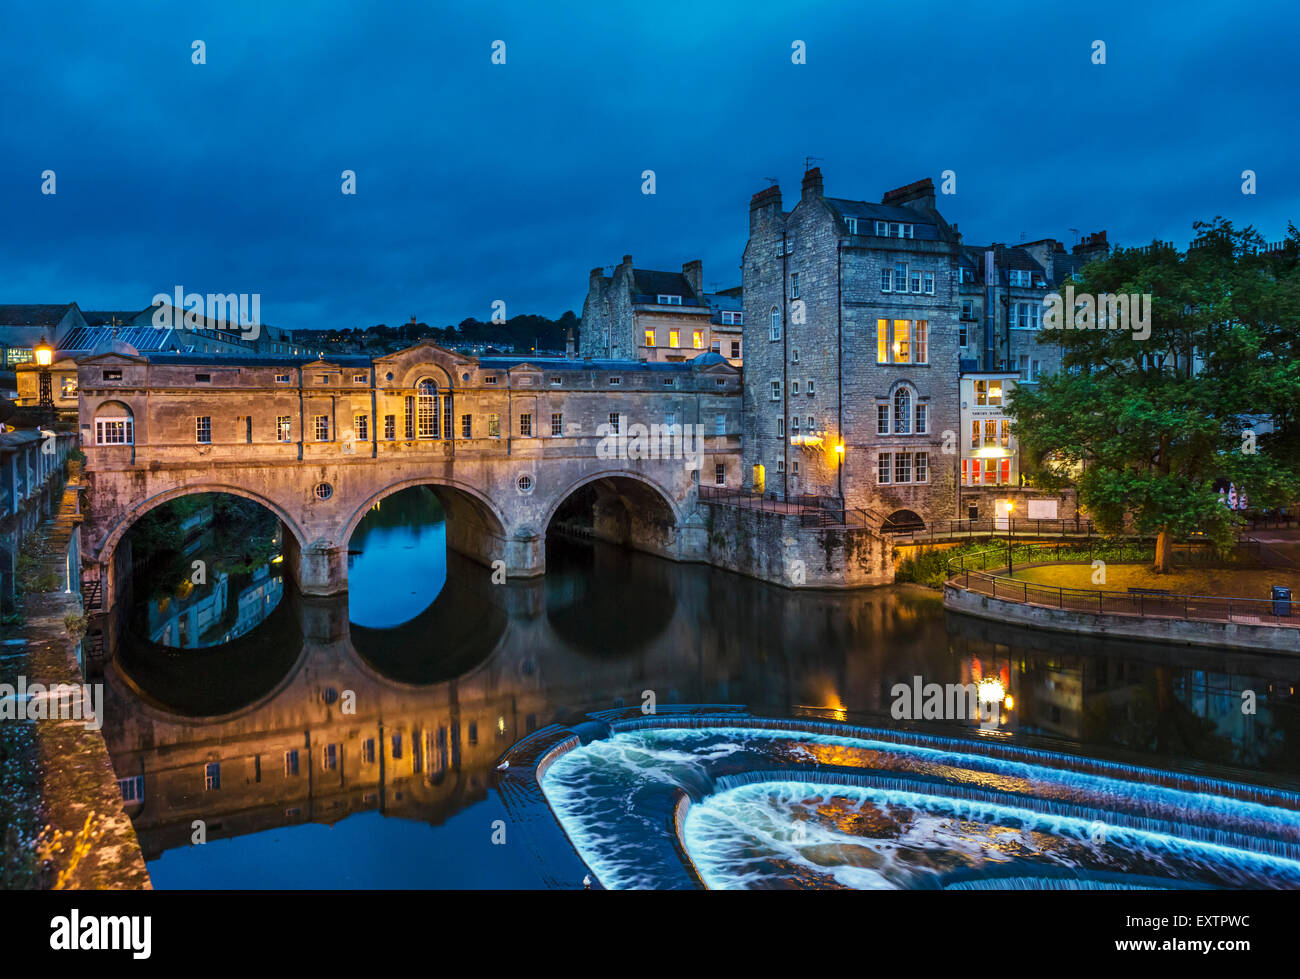 Night shot of the historic 18thC Pulteney Bridge over the River Avon in the historic city centre, Bath, Somerset, - Stock Image